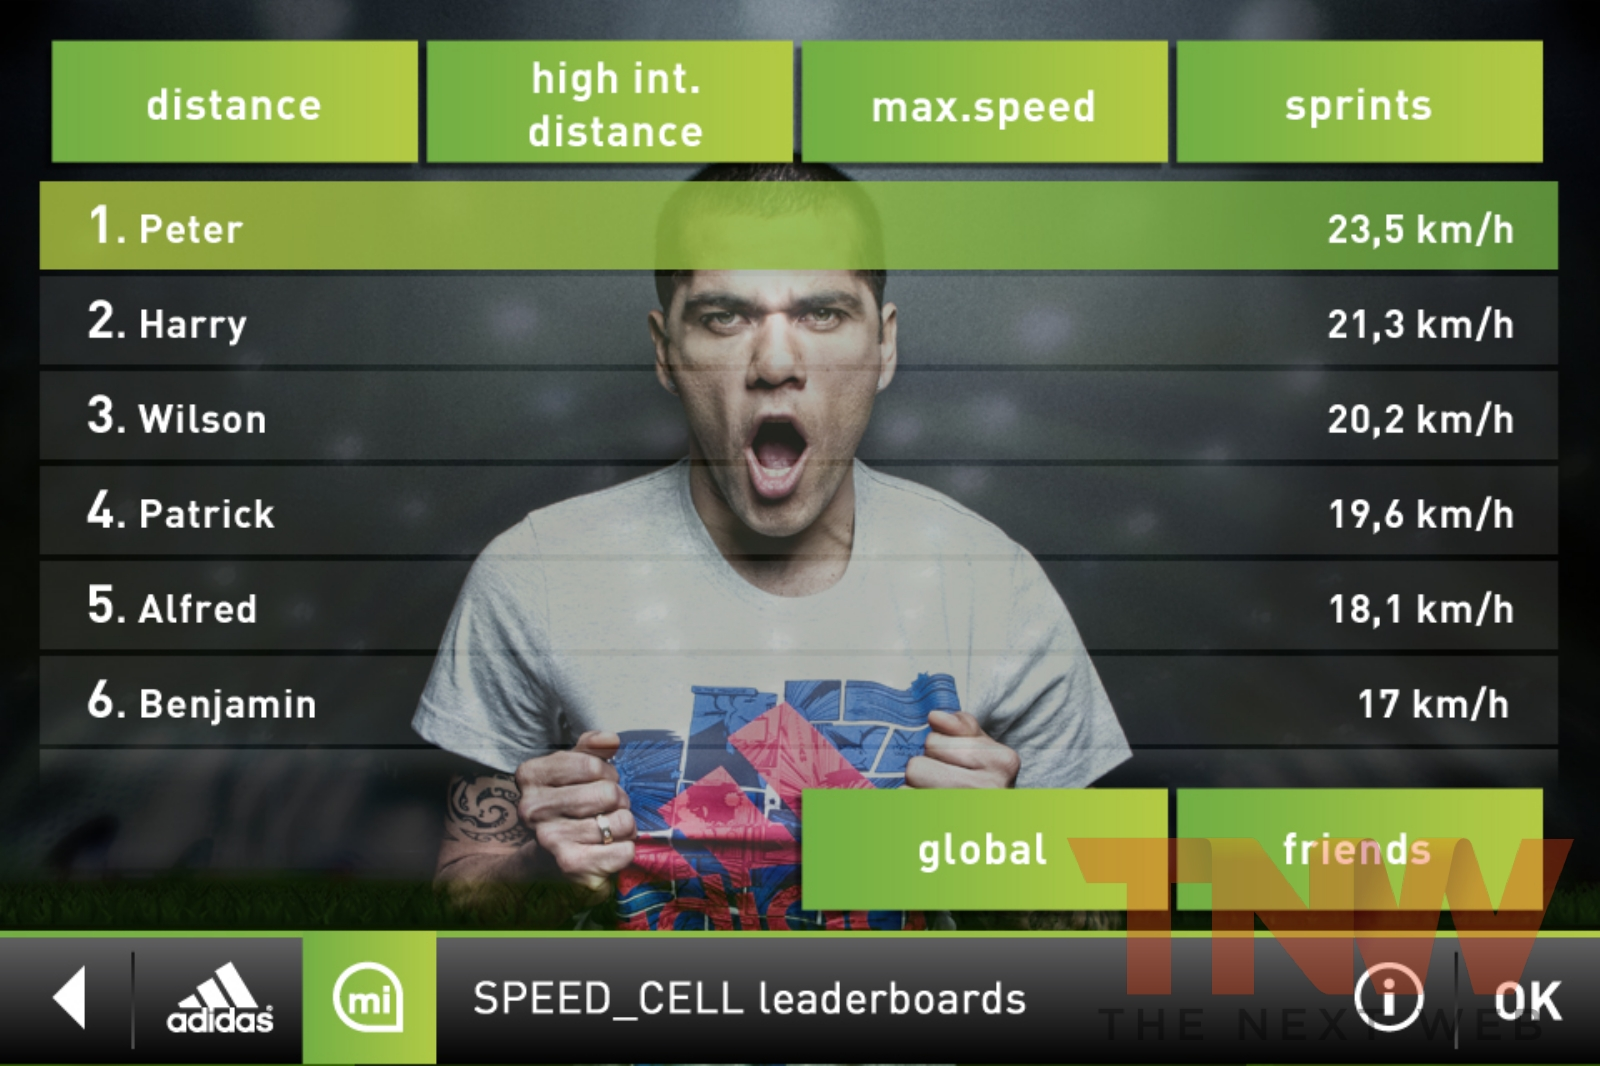 F_SPEED_CELL-leaderboardswtmk